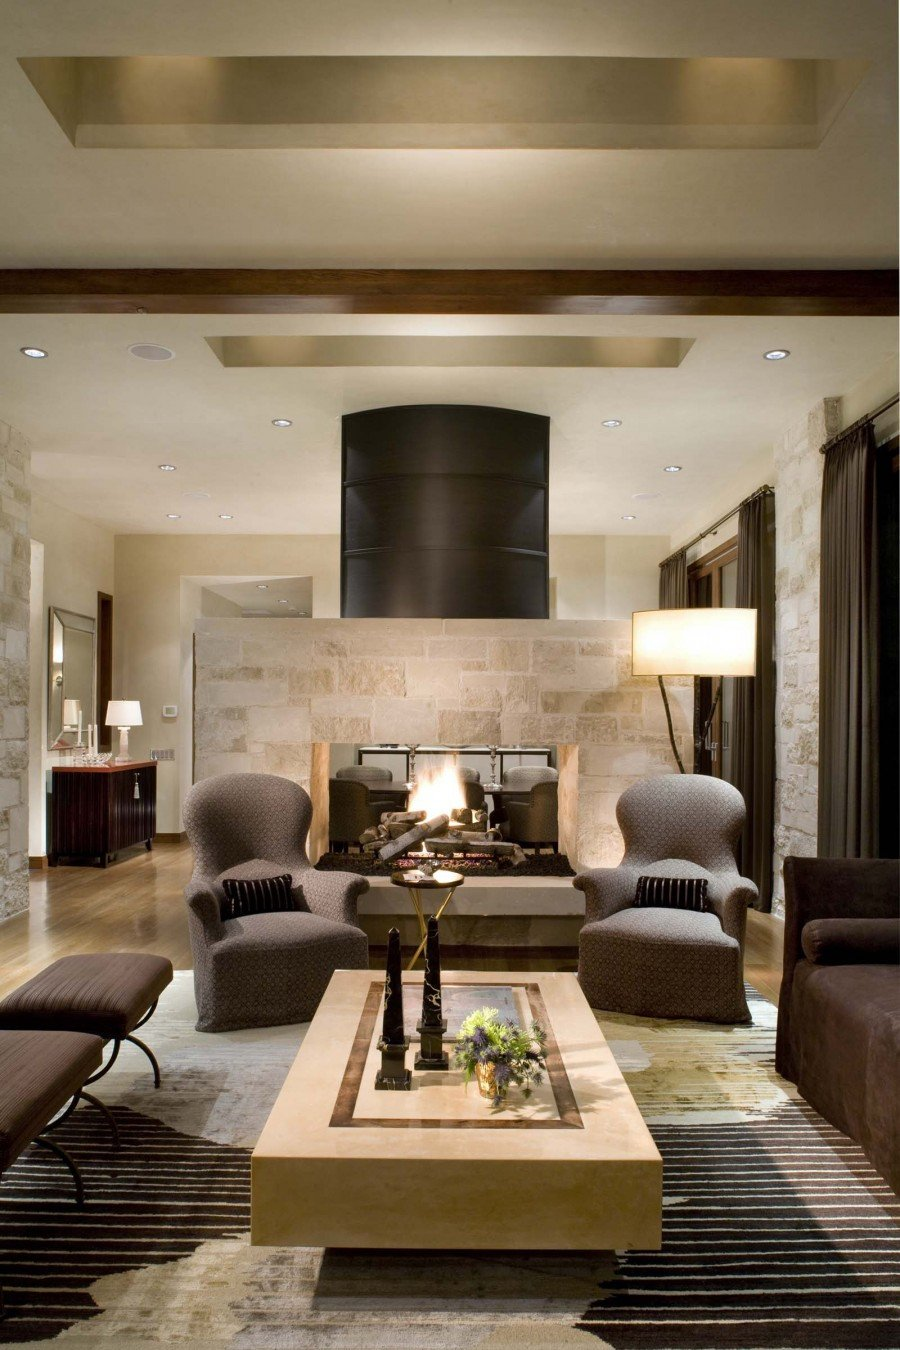 Modern Living Room Decorating Ideas Fireplace 16 Fabulous Earth tones Living Room Designs Decoholic